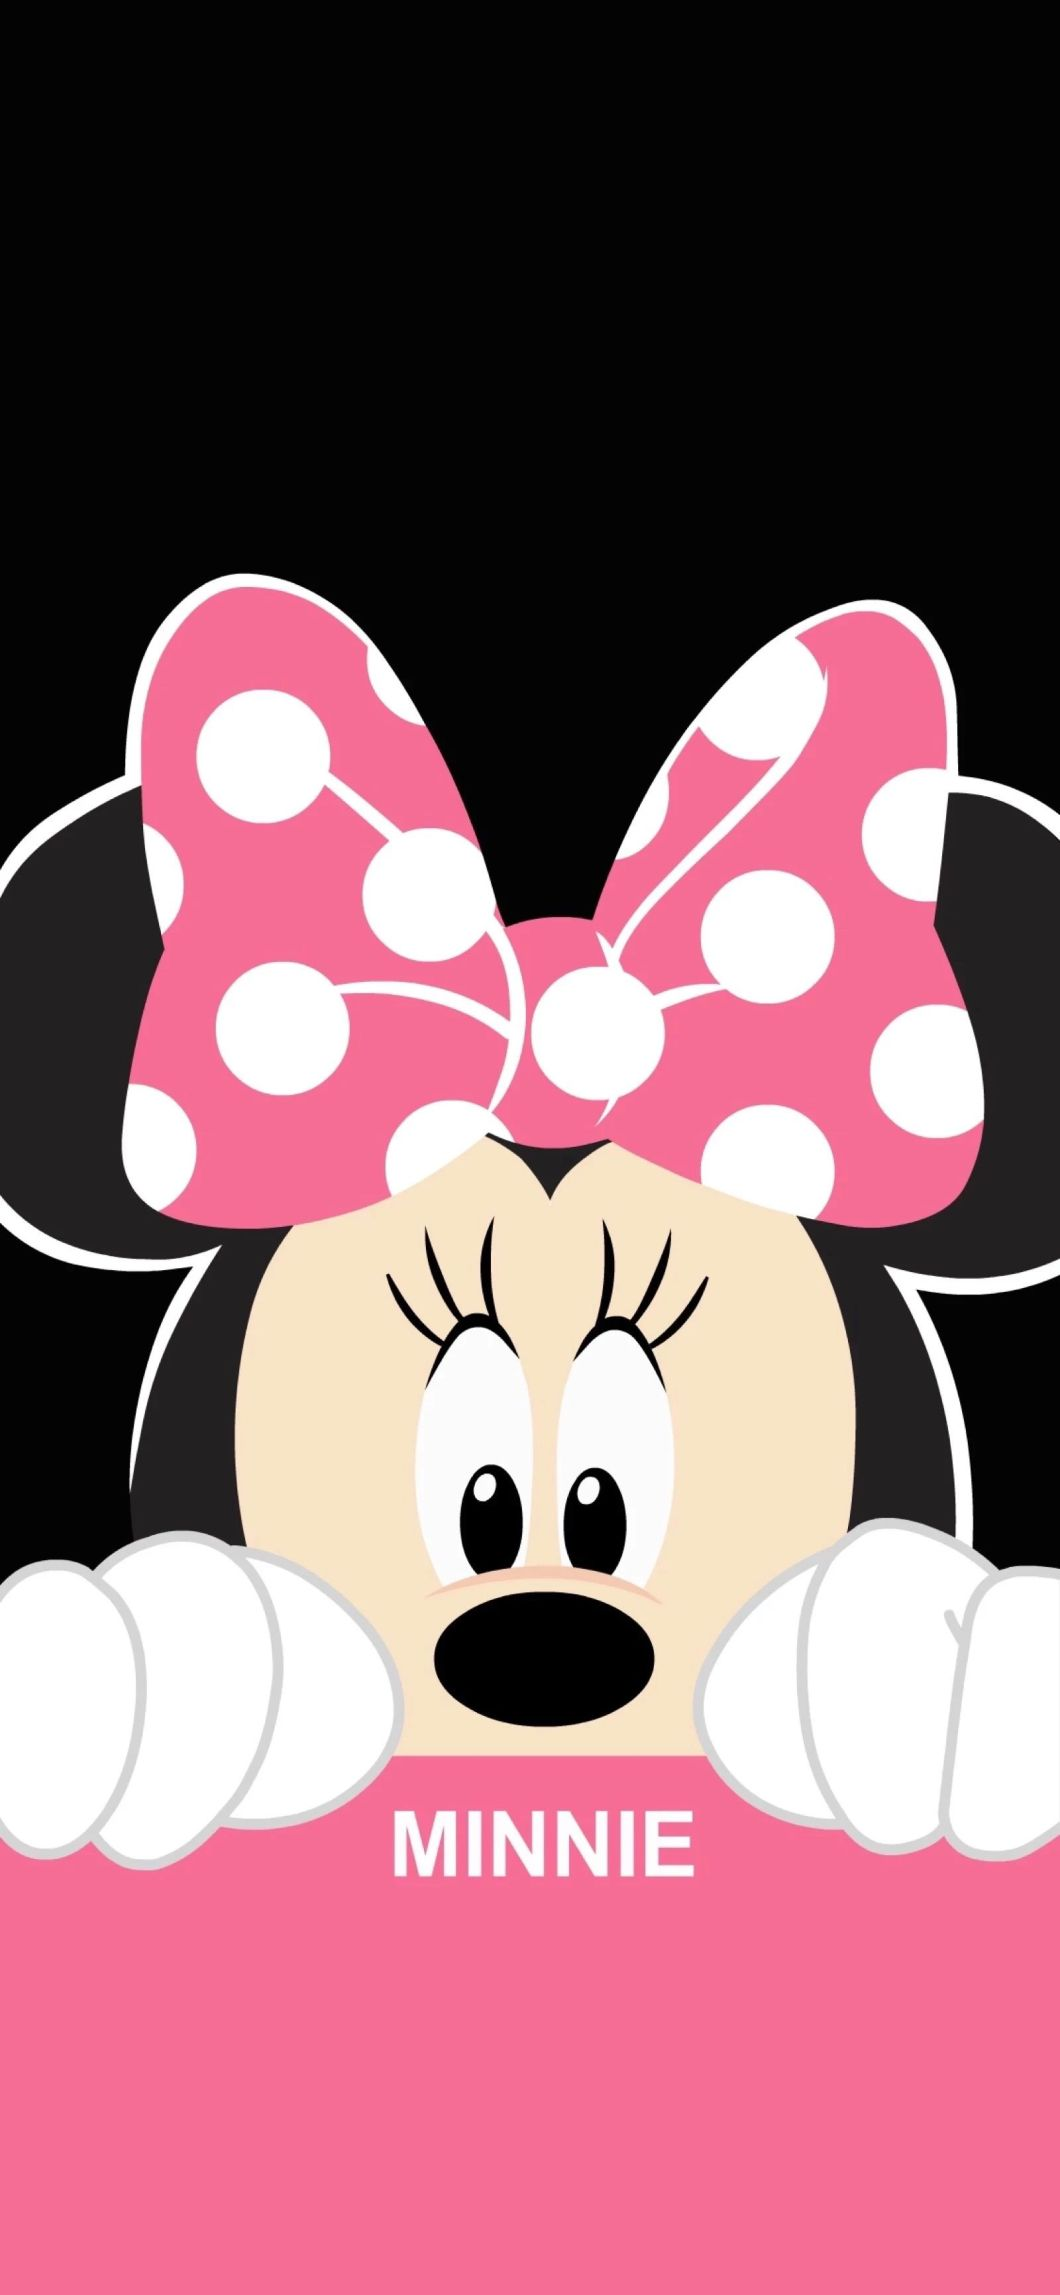 1060x2295 Minnie Mouse Wallpapers For Mobile | Bestpicture1.org